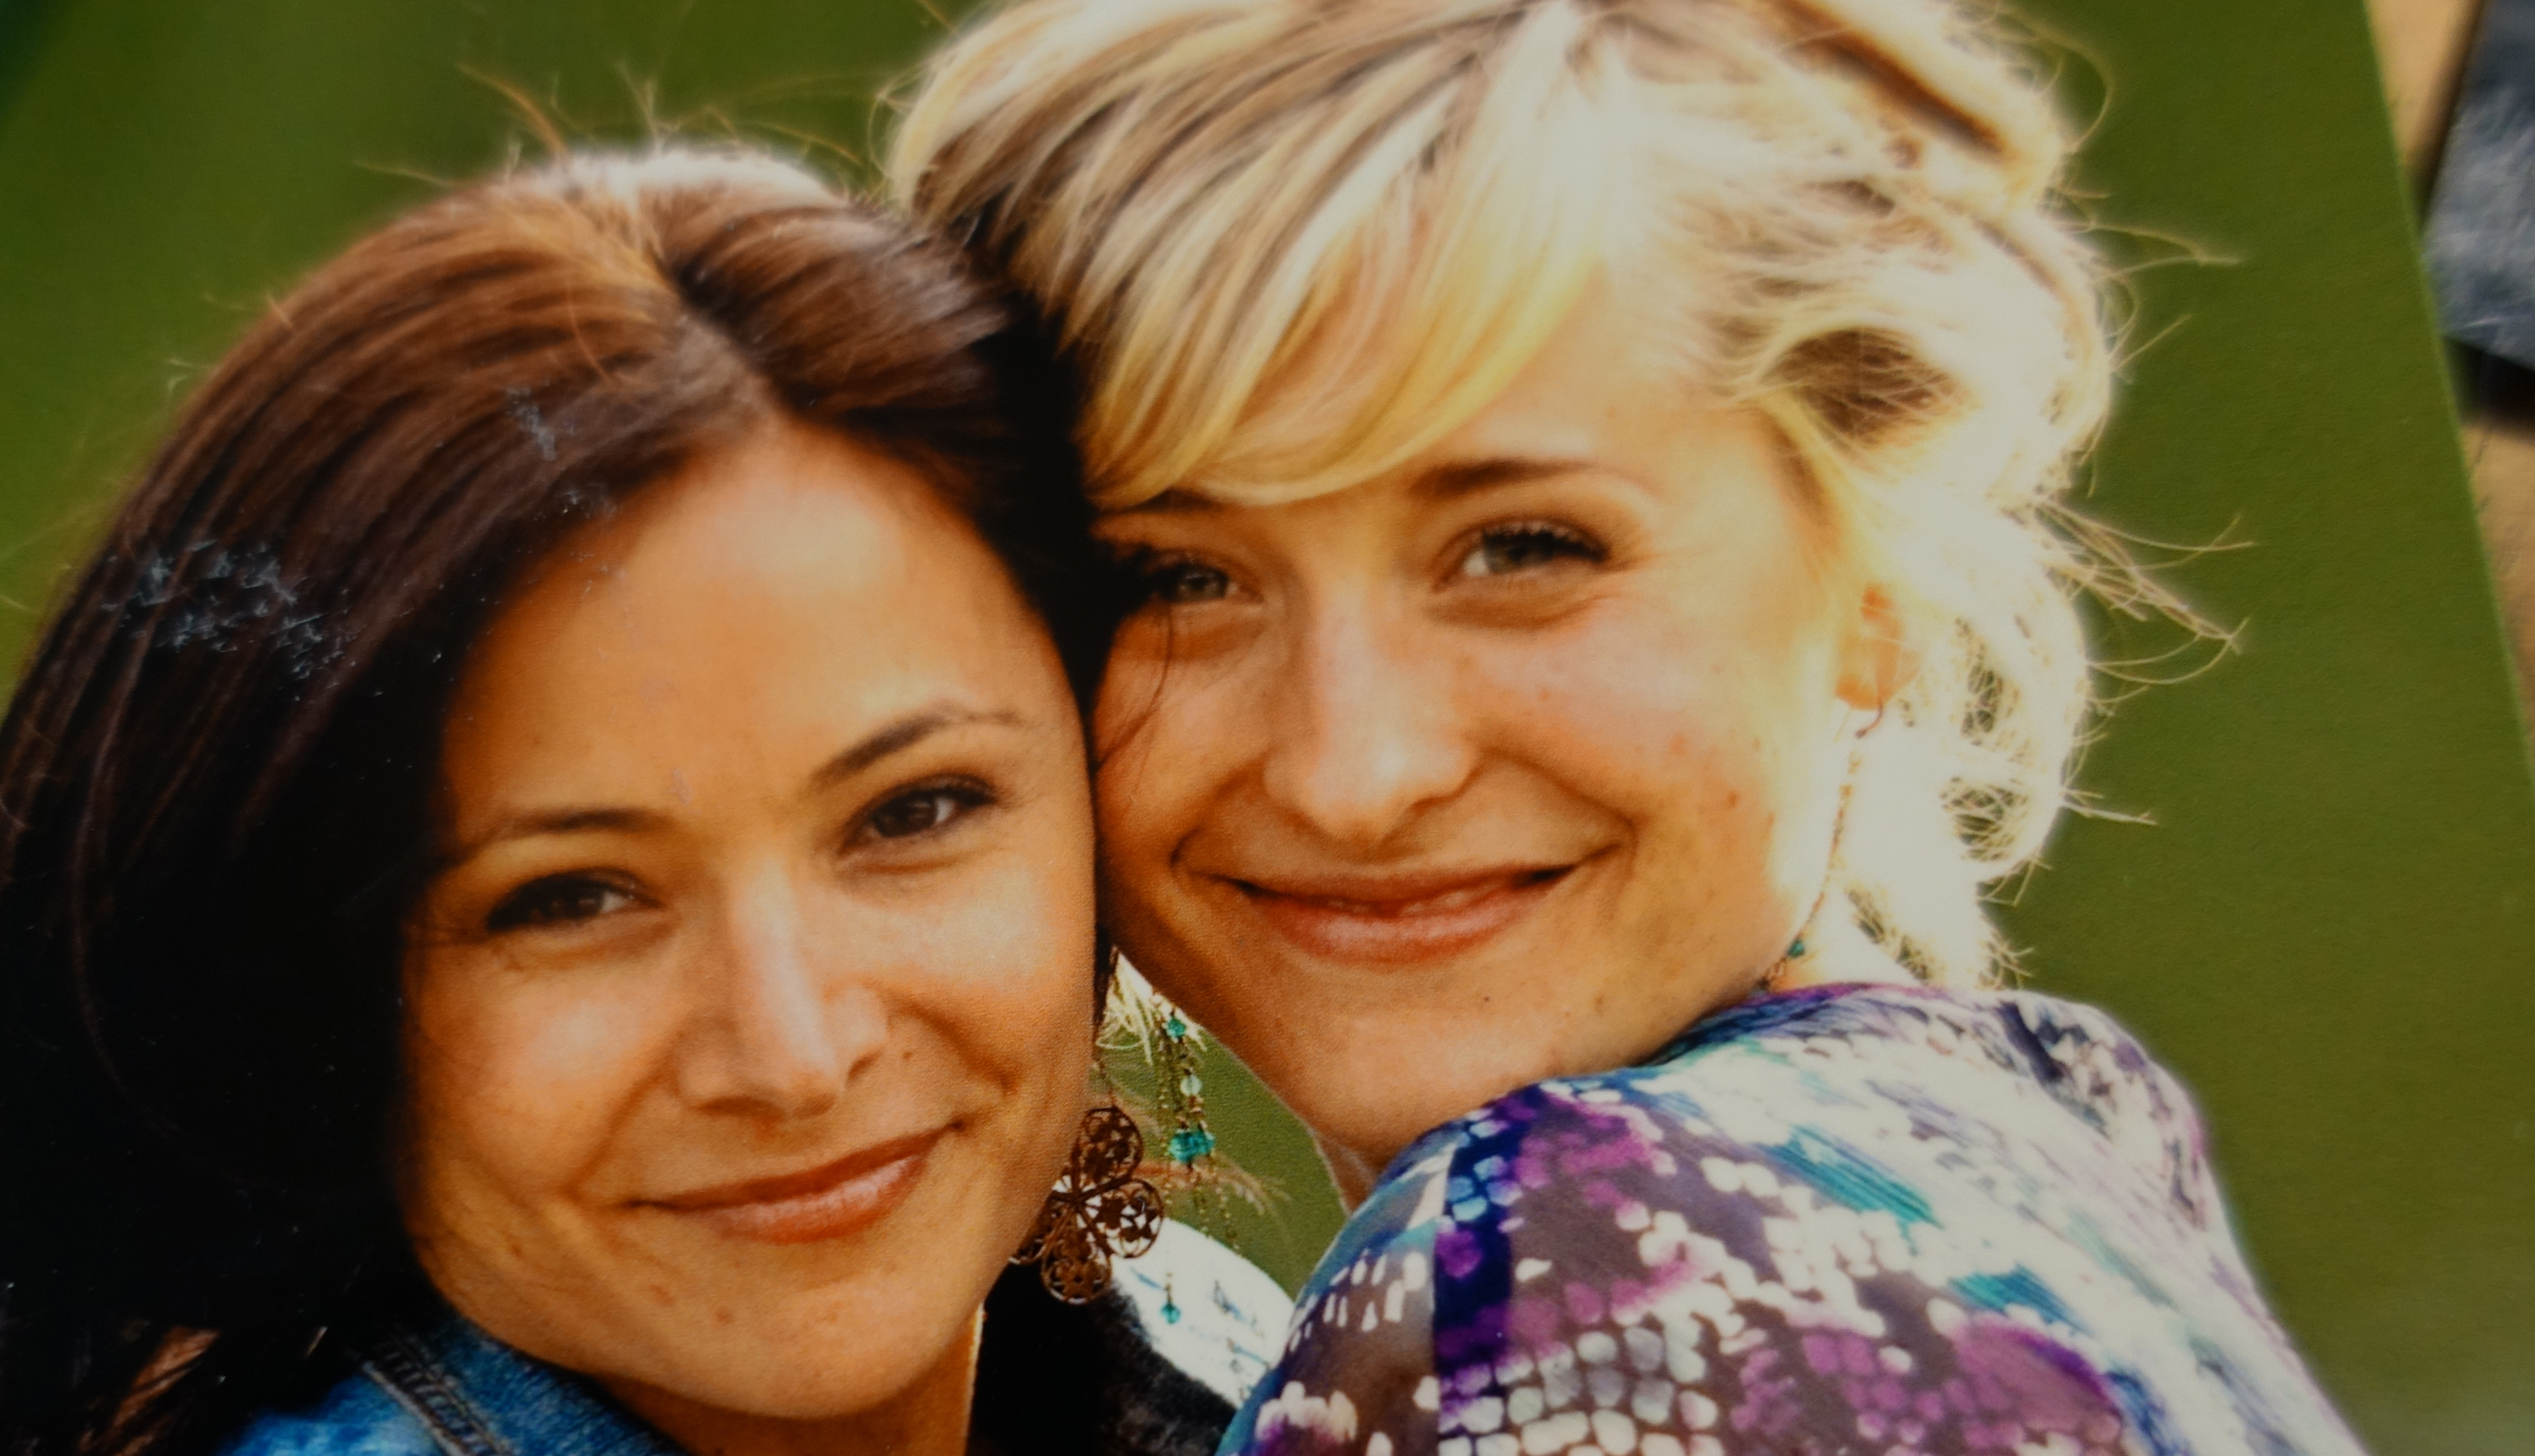 One of Edmondson's photos showing her with Smallville actor Allison Mack. Mack has pleaded not guilty to charges of sex trafficking and conspiracy to commit forced labour for her alleged role in what authorities say was a sex cult within NXIVM.